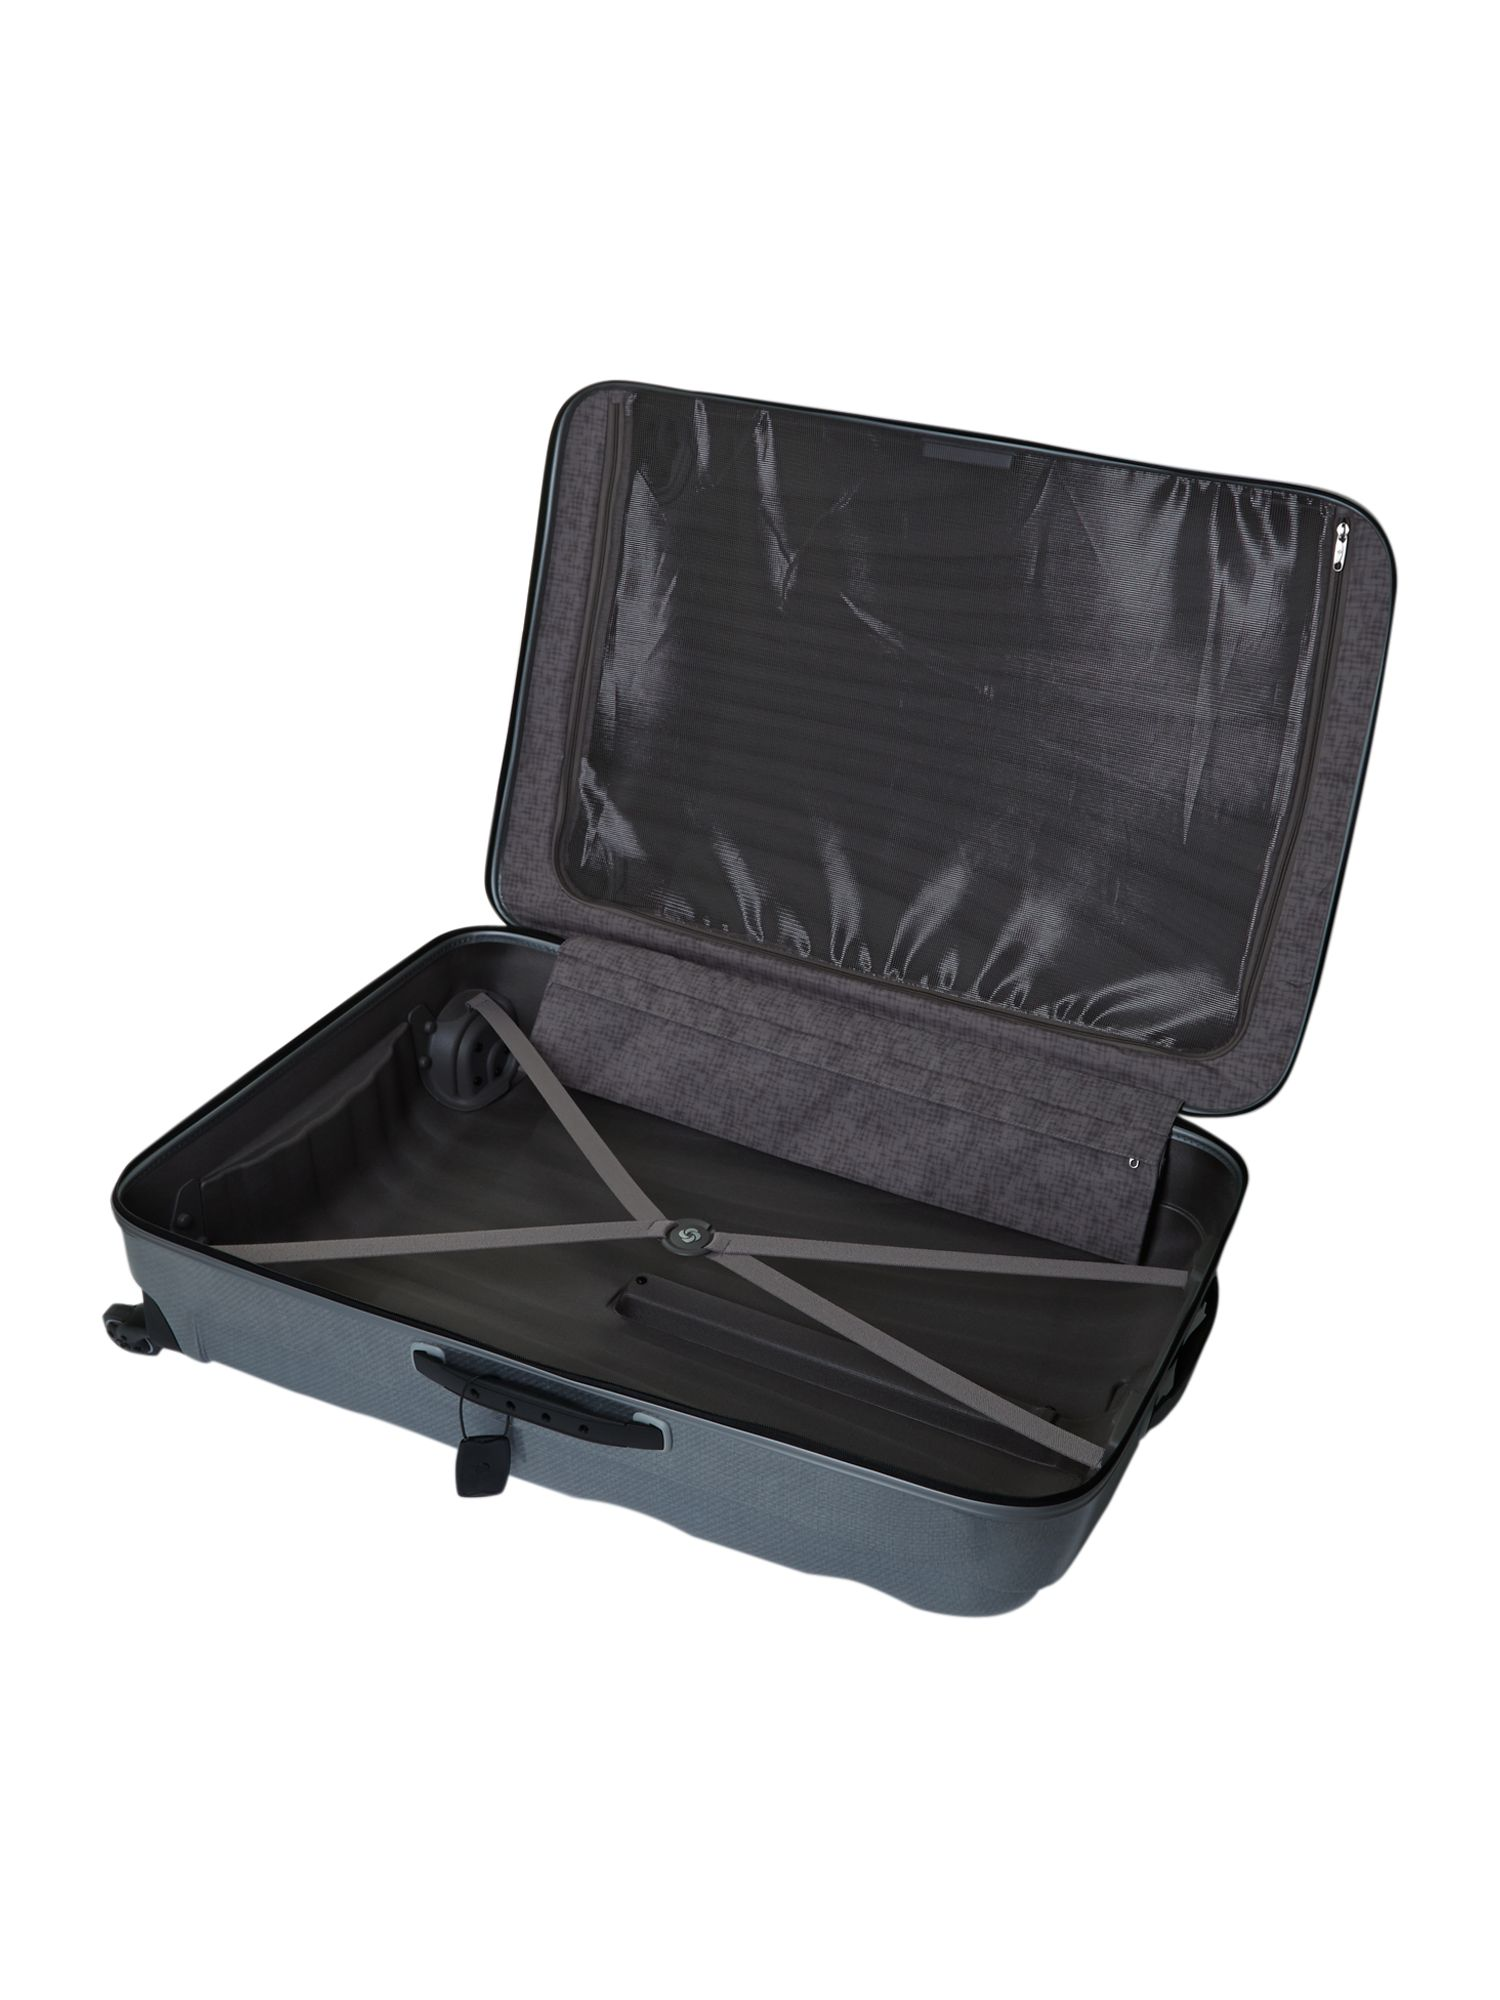 New Cosmolite 4-Wheel Extra Large Suitcase